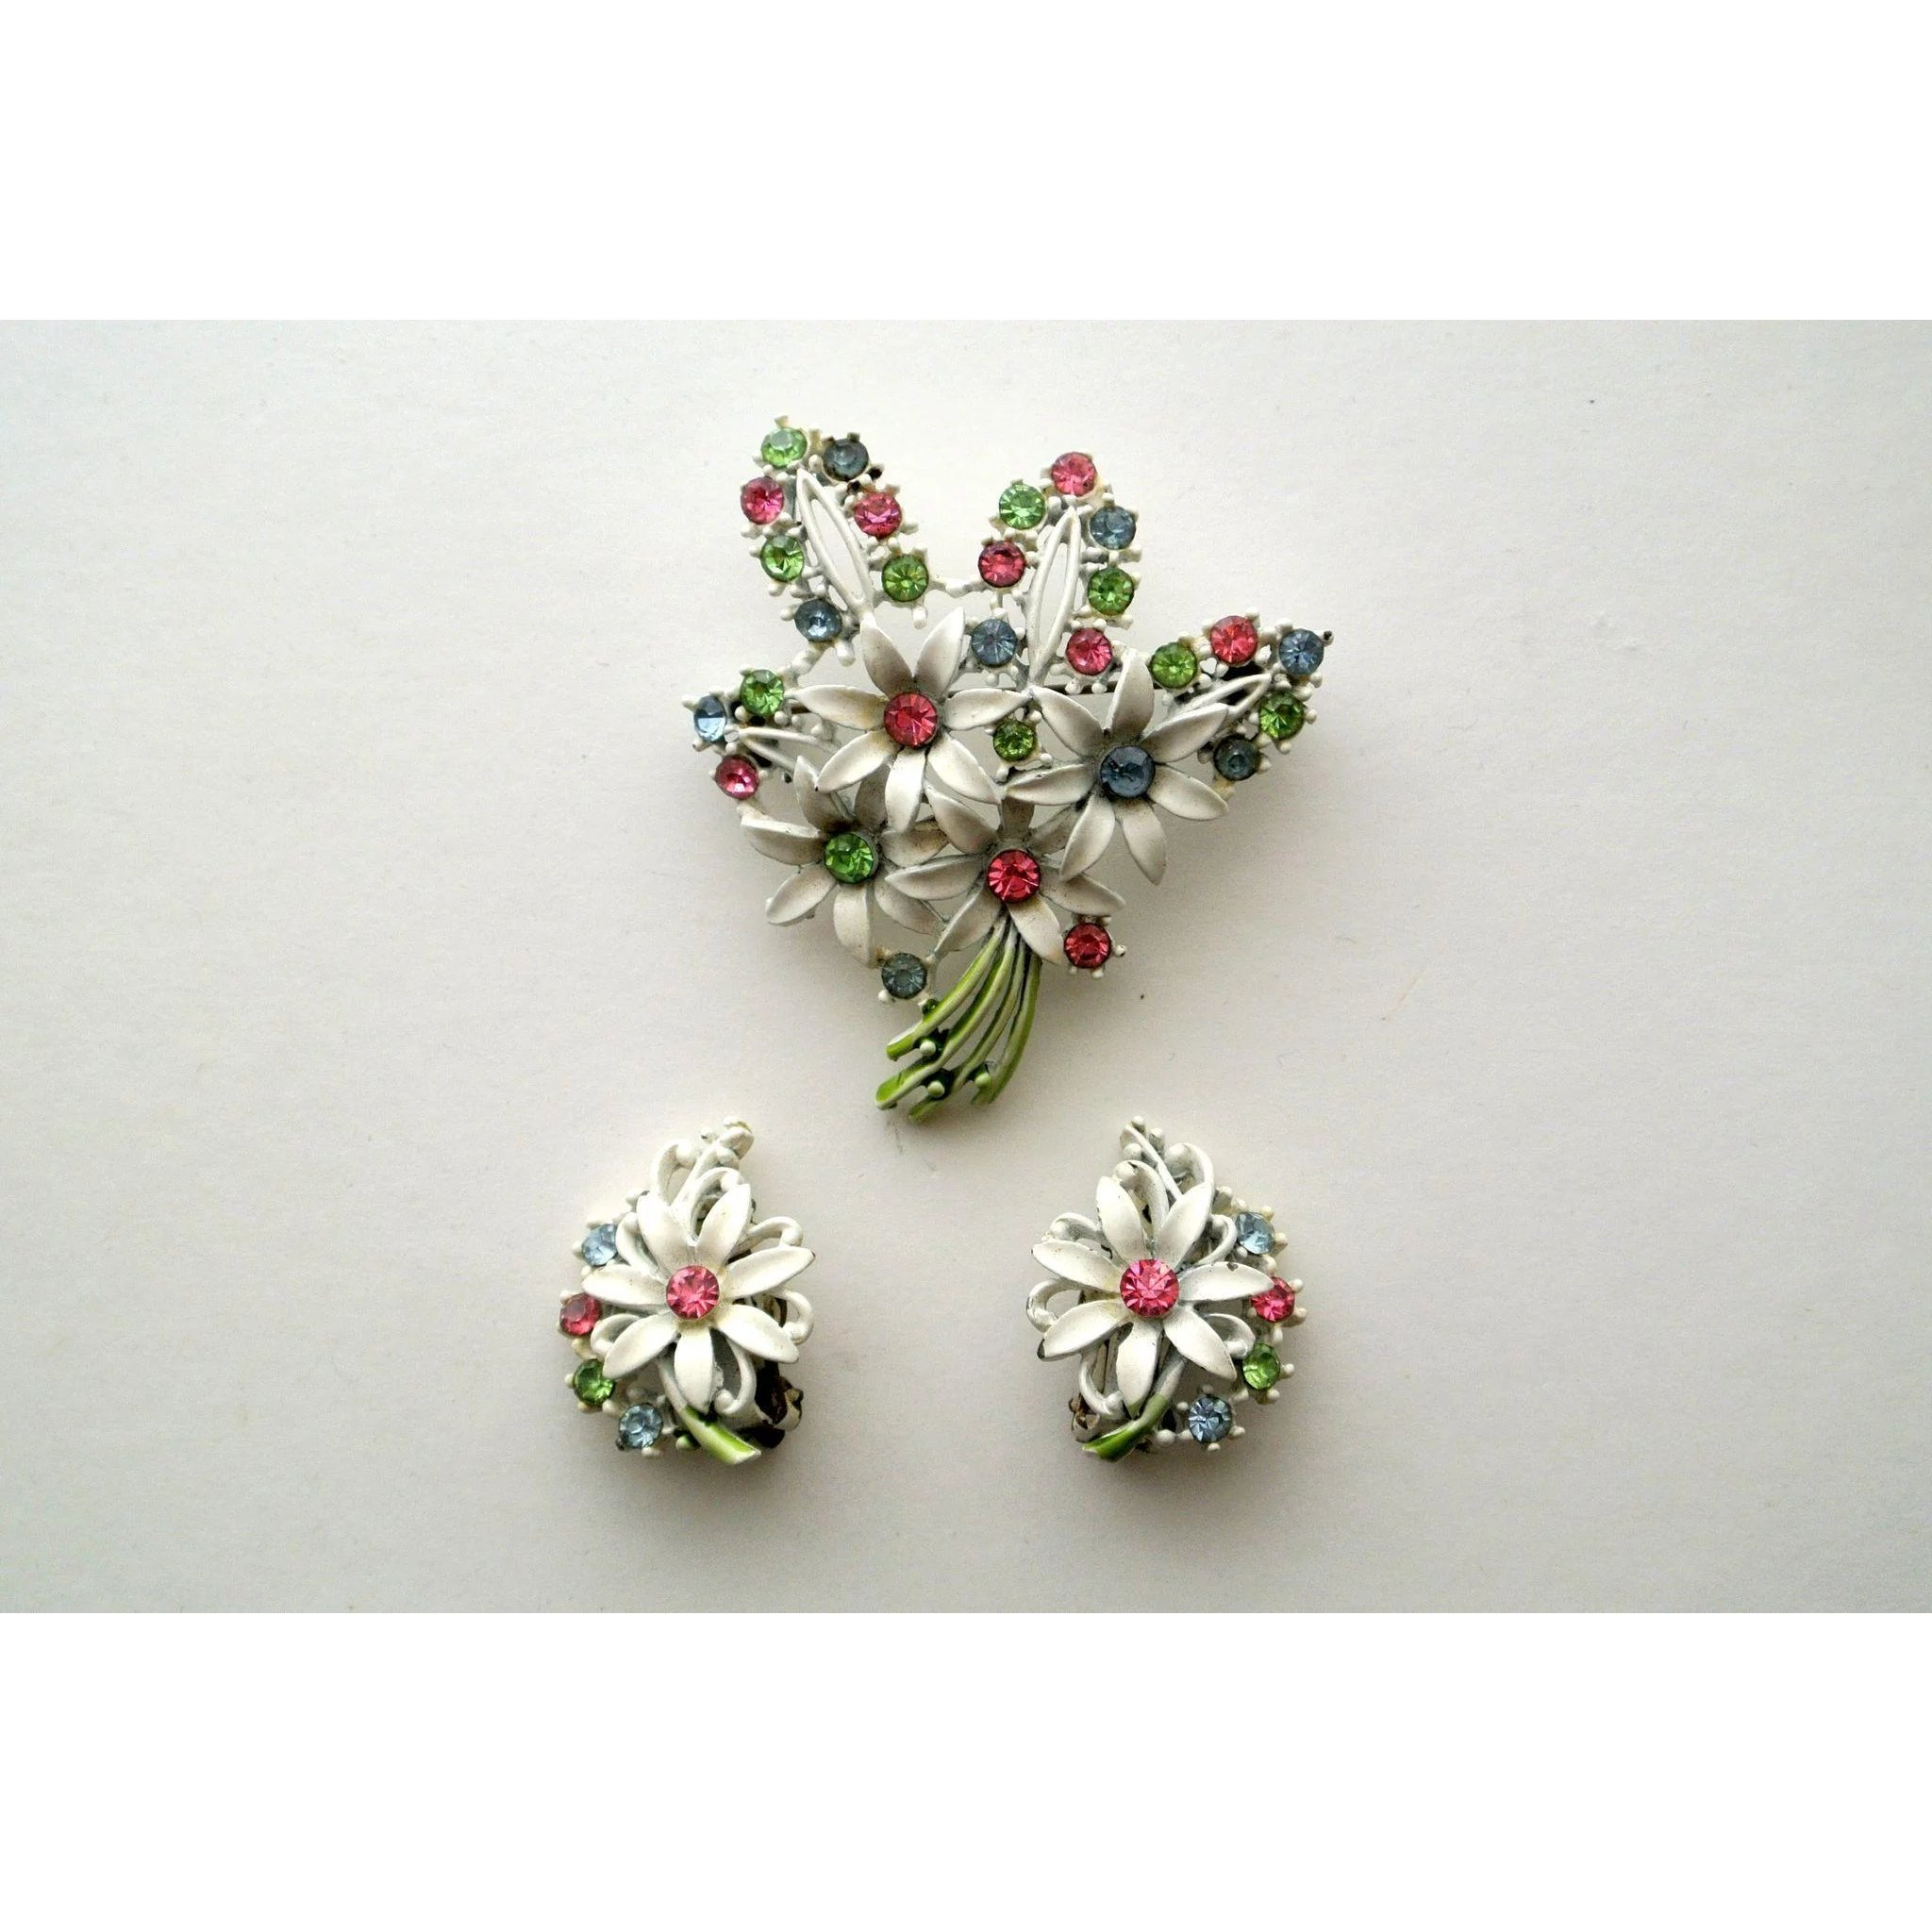 Vintage Enamel Flower Bouquet Rhinestones Pin Brooch And Earring Set